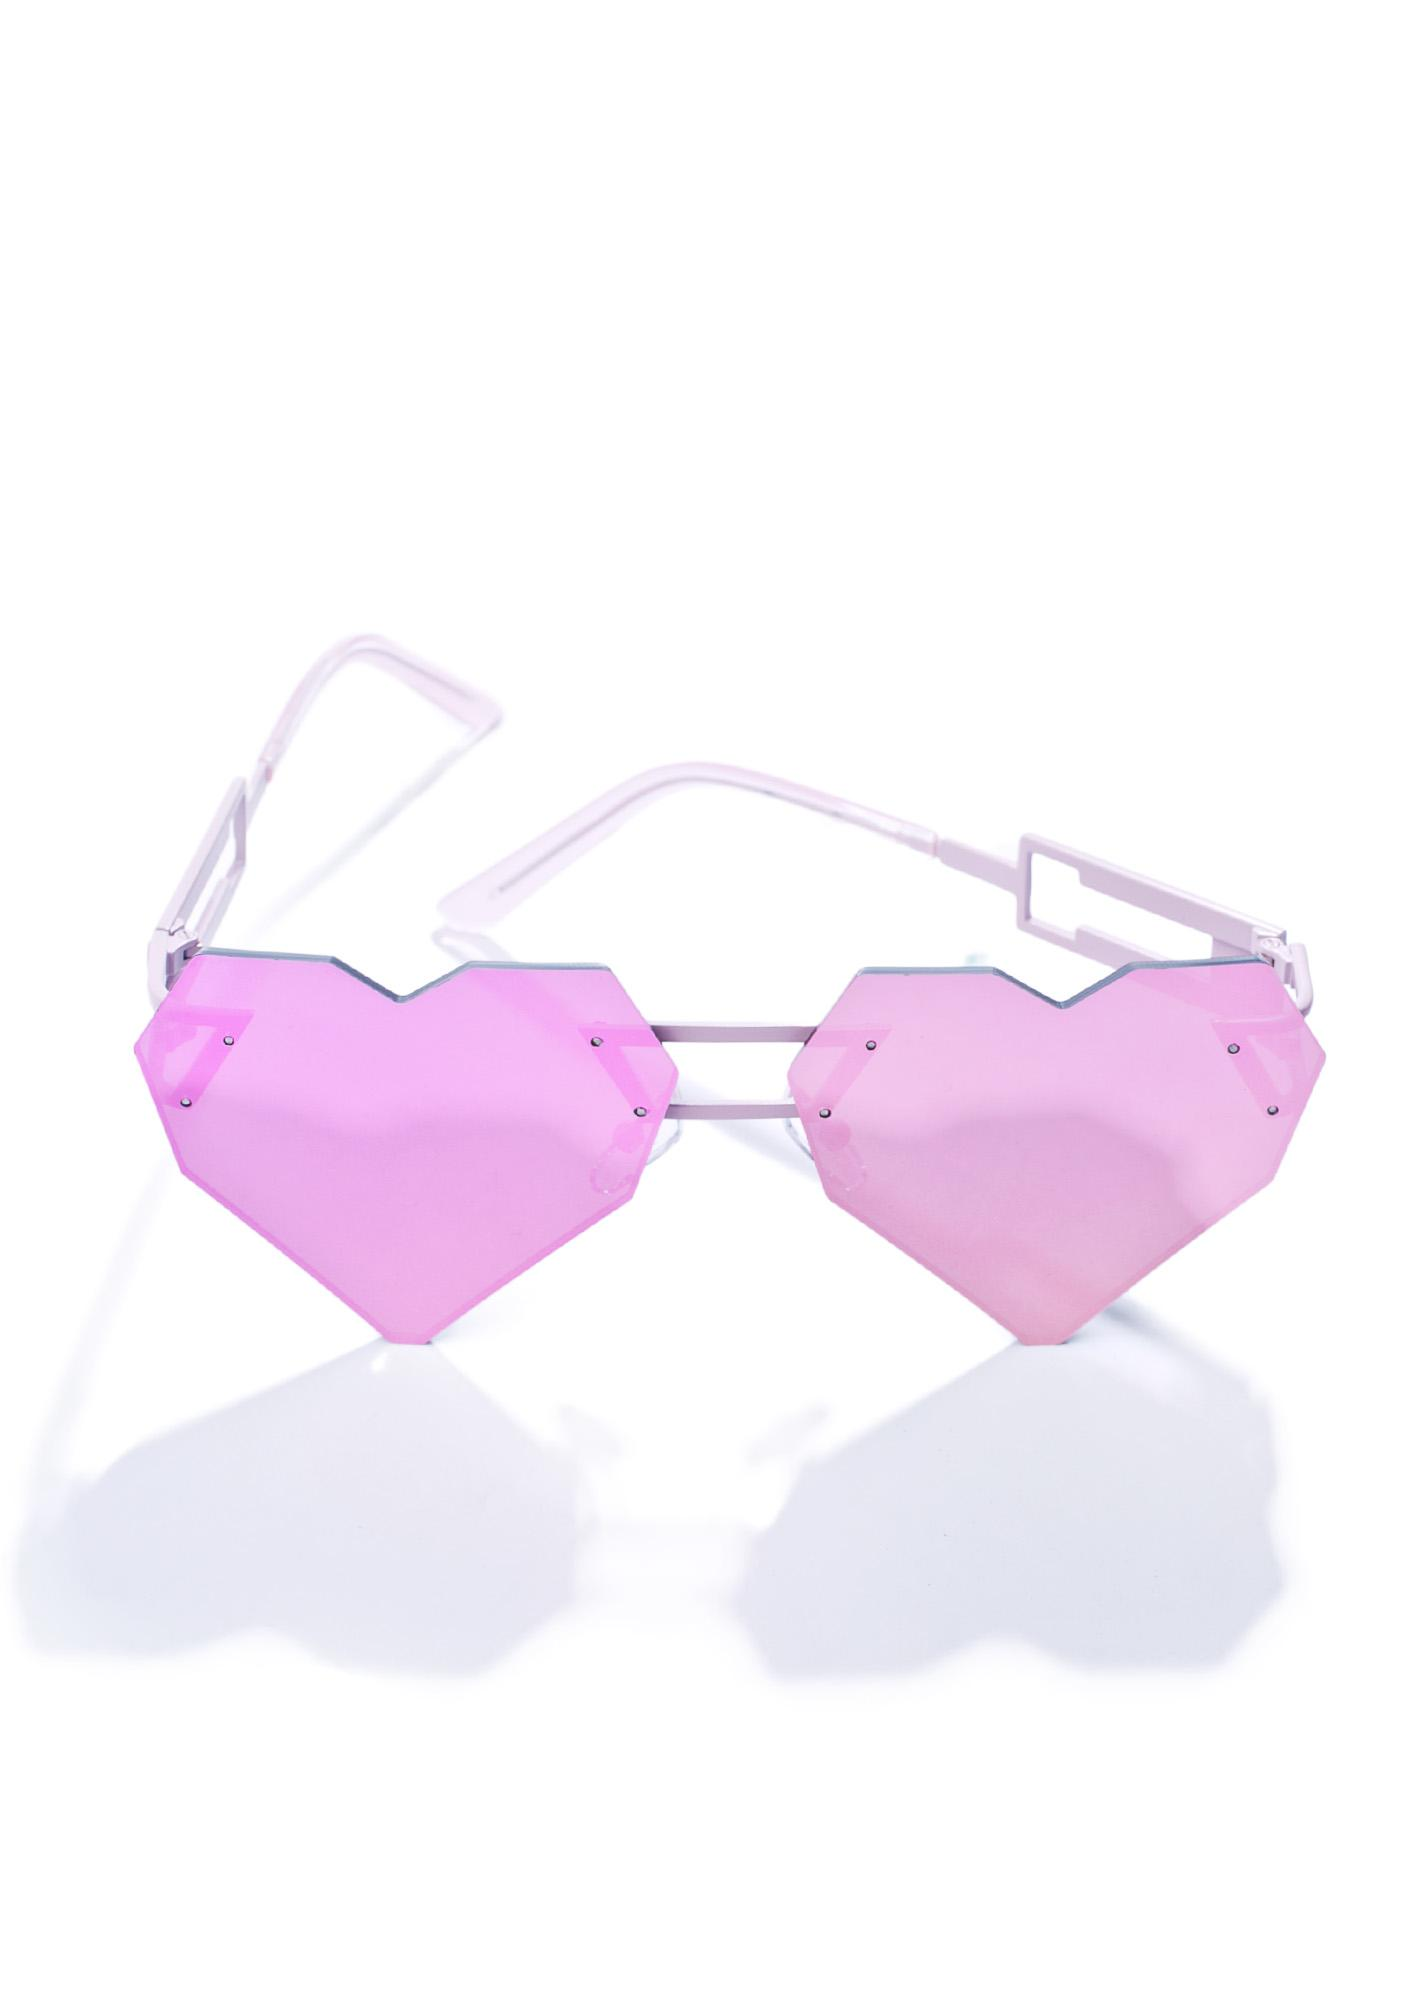 ESQAPE Pink Heart Speqz Sunglasses